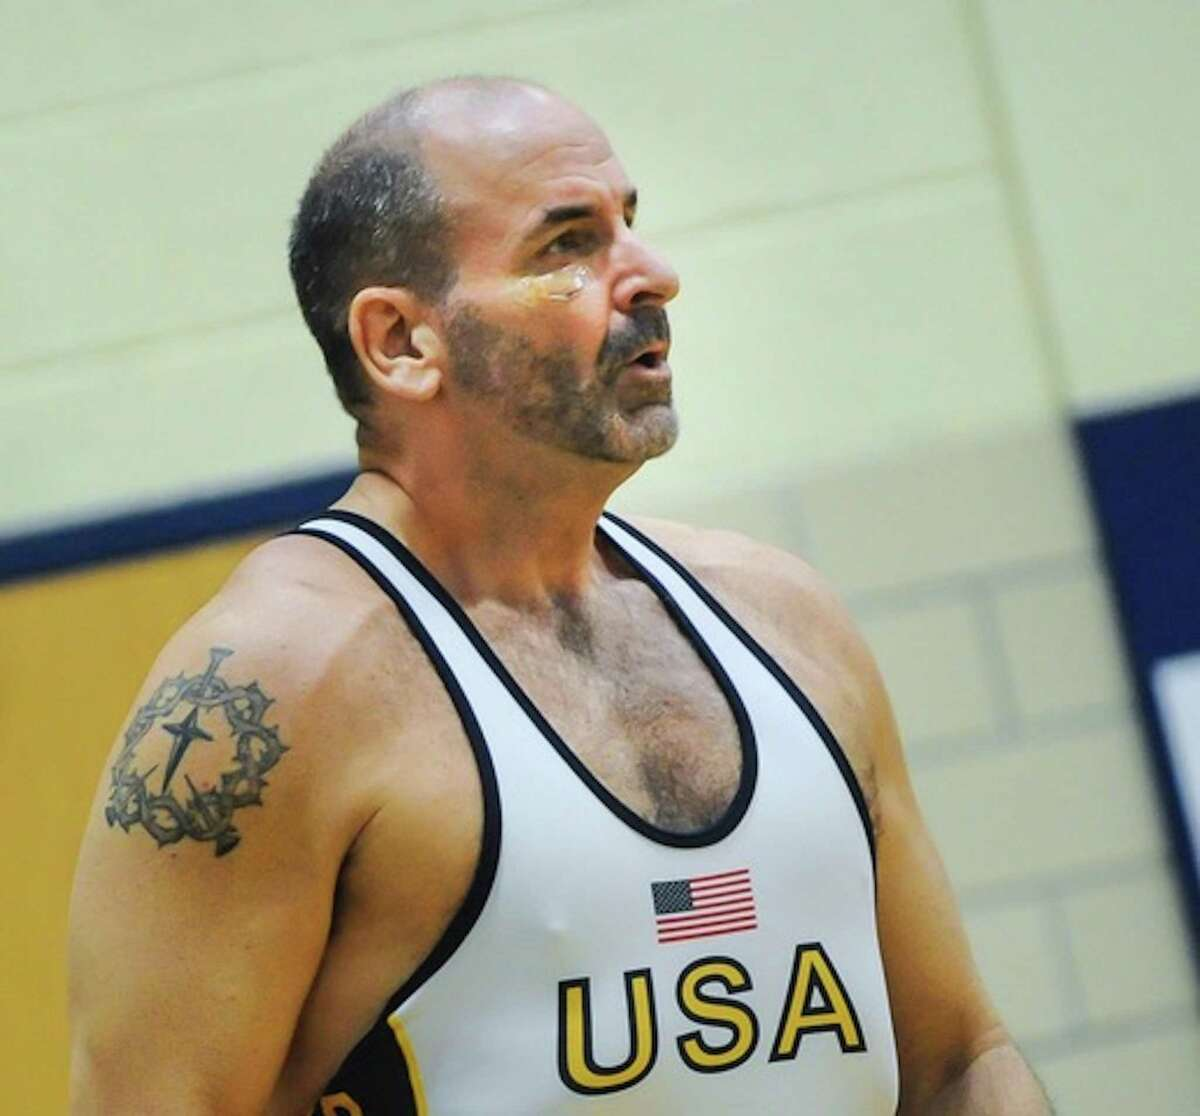 Ridgefield resident Mark Dollins, 60, will return to the USA Wrestling Folkstyle Championships this weekend in the hopes of claiming his third national title.